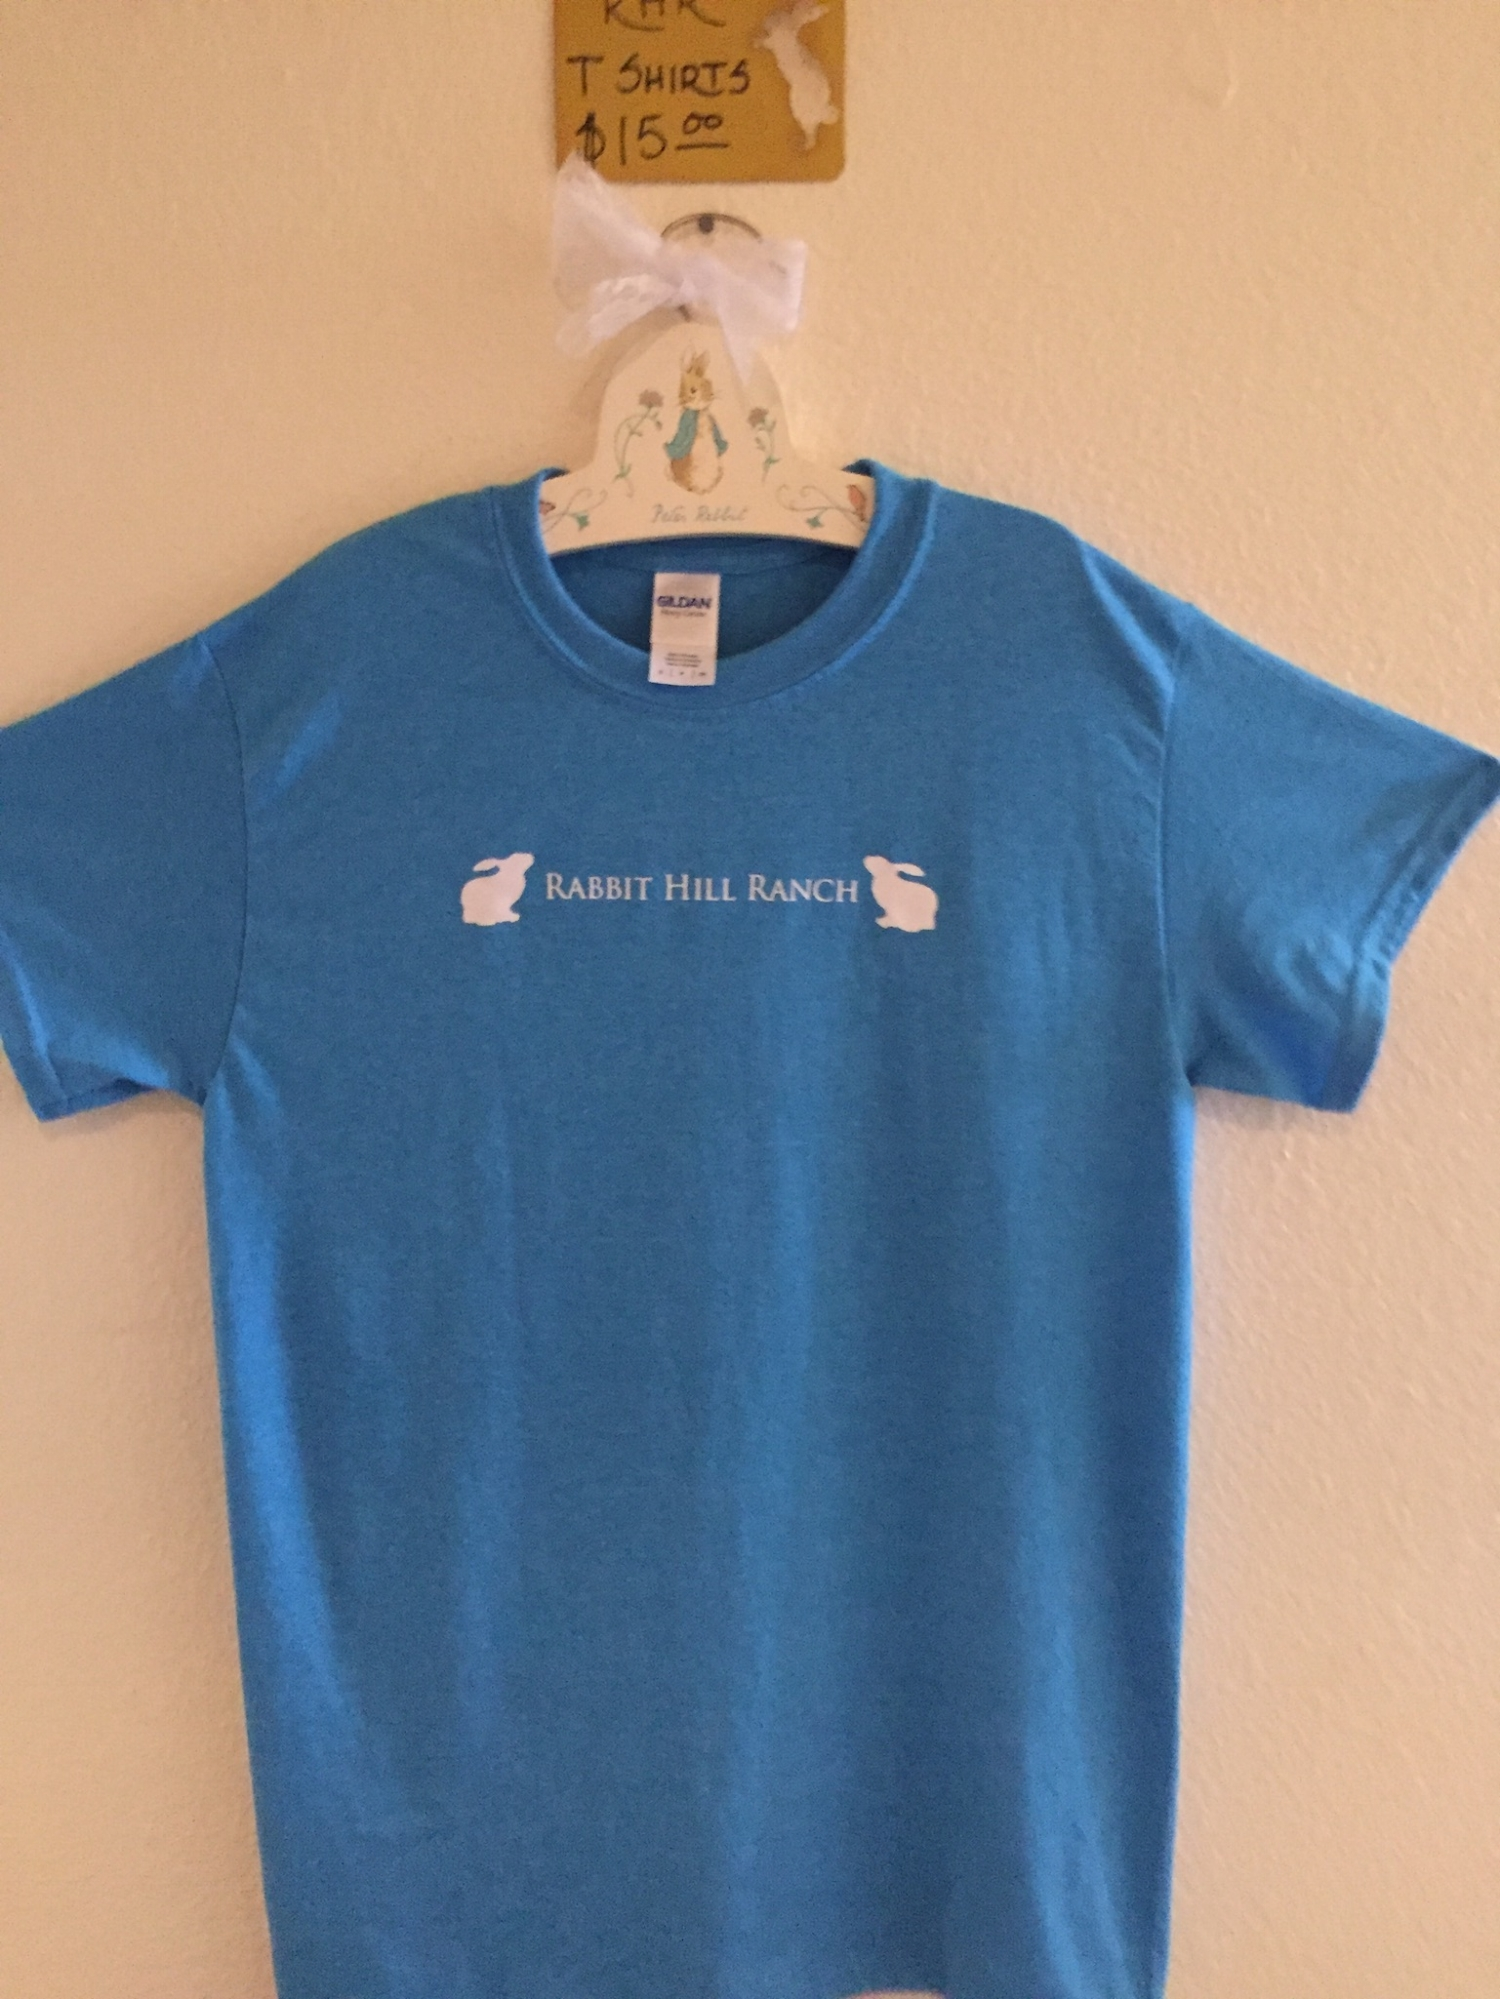 Shirts can be custom ordered, just let us know what you need and when.